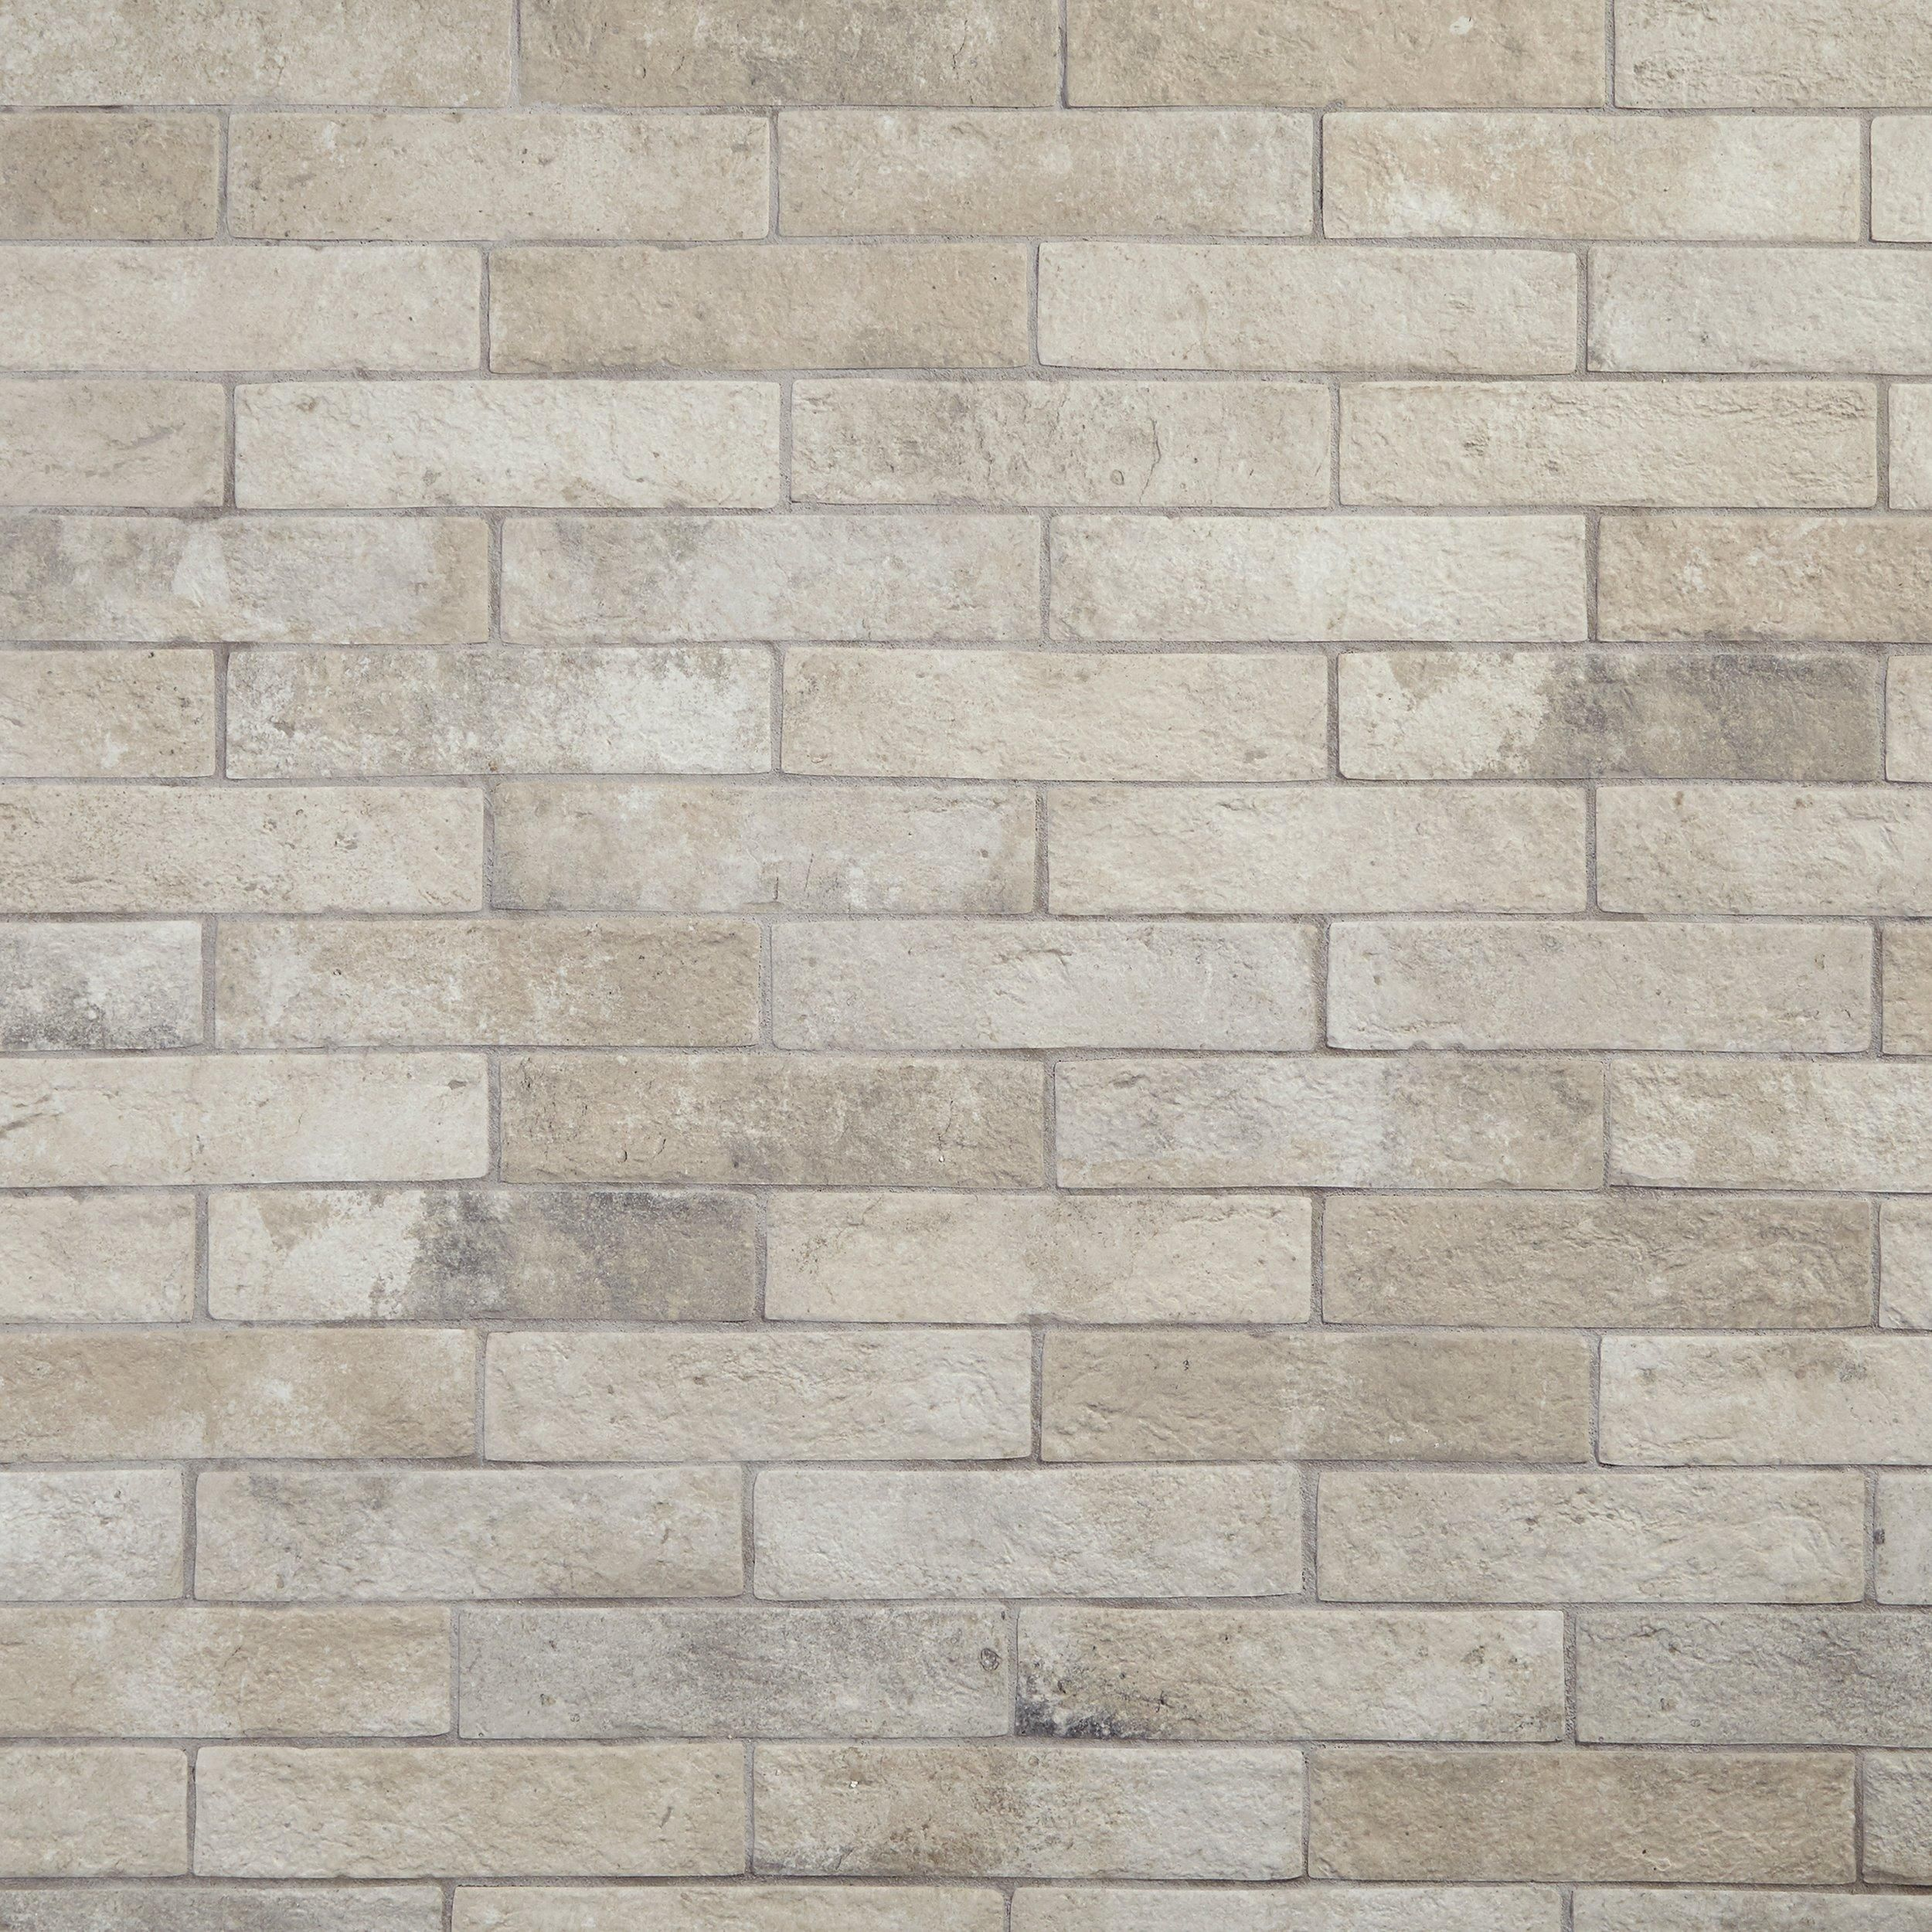 Alta Crema Brick Porcelain Tile In 2019 Products